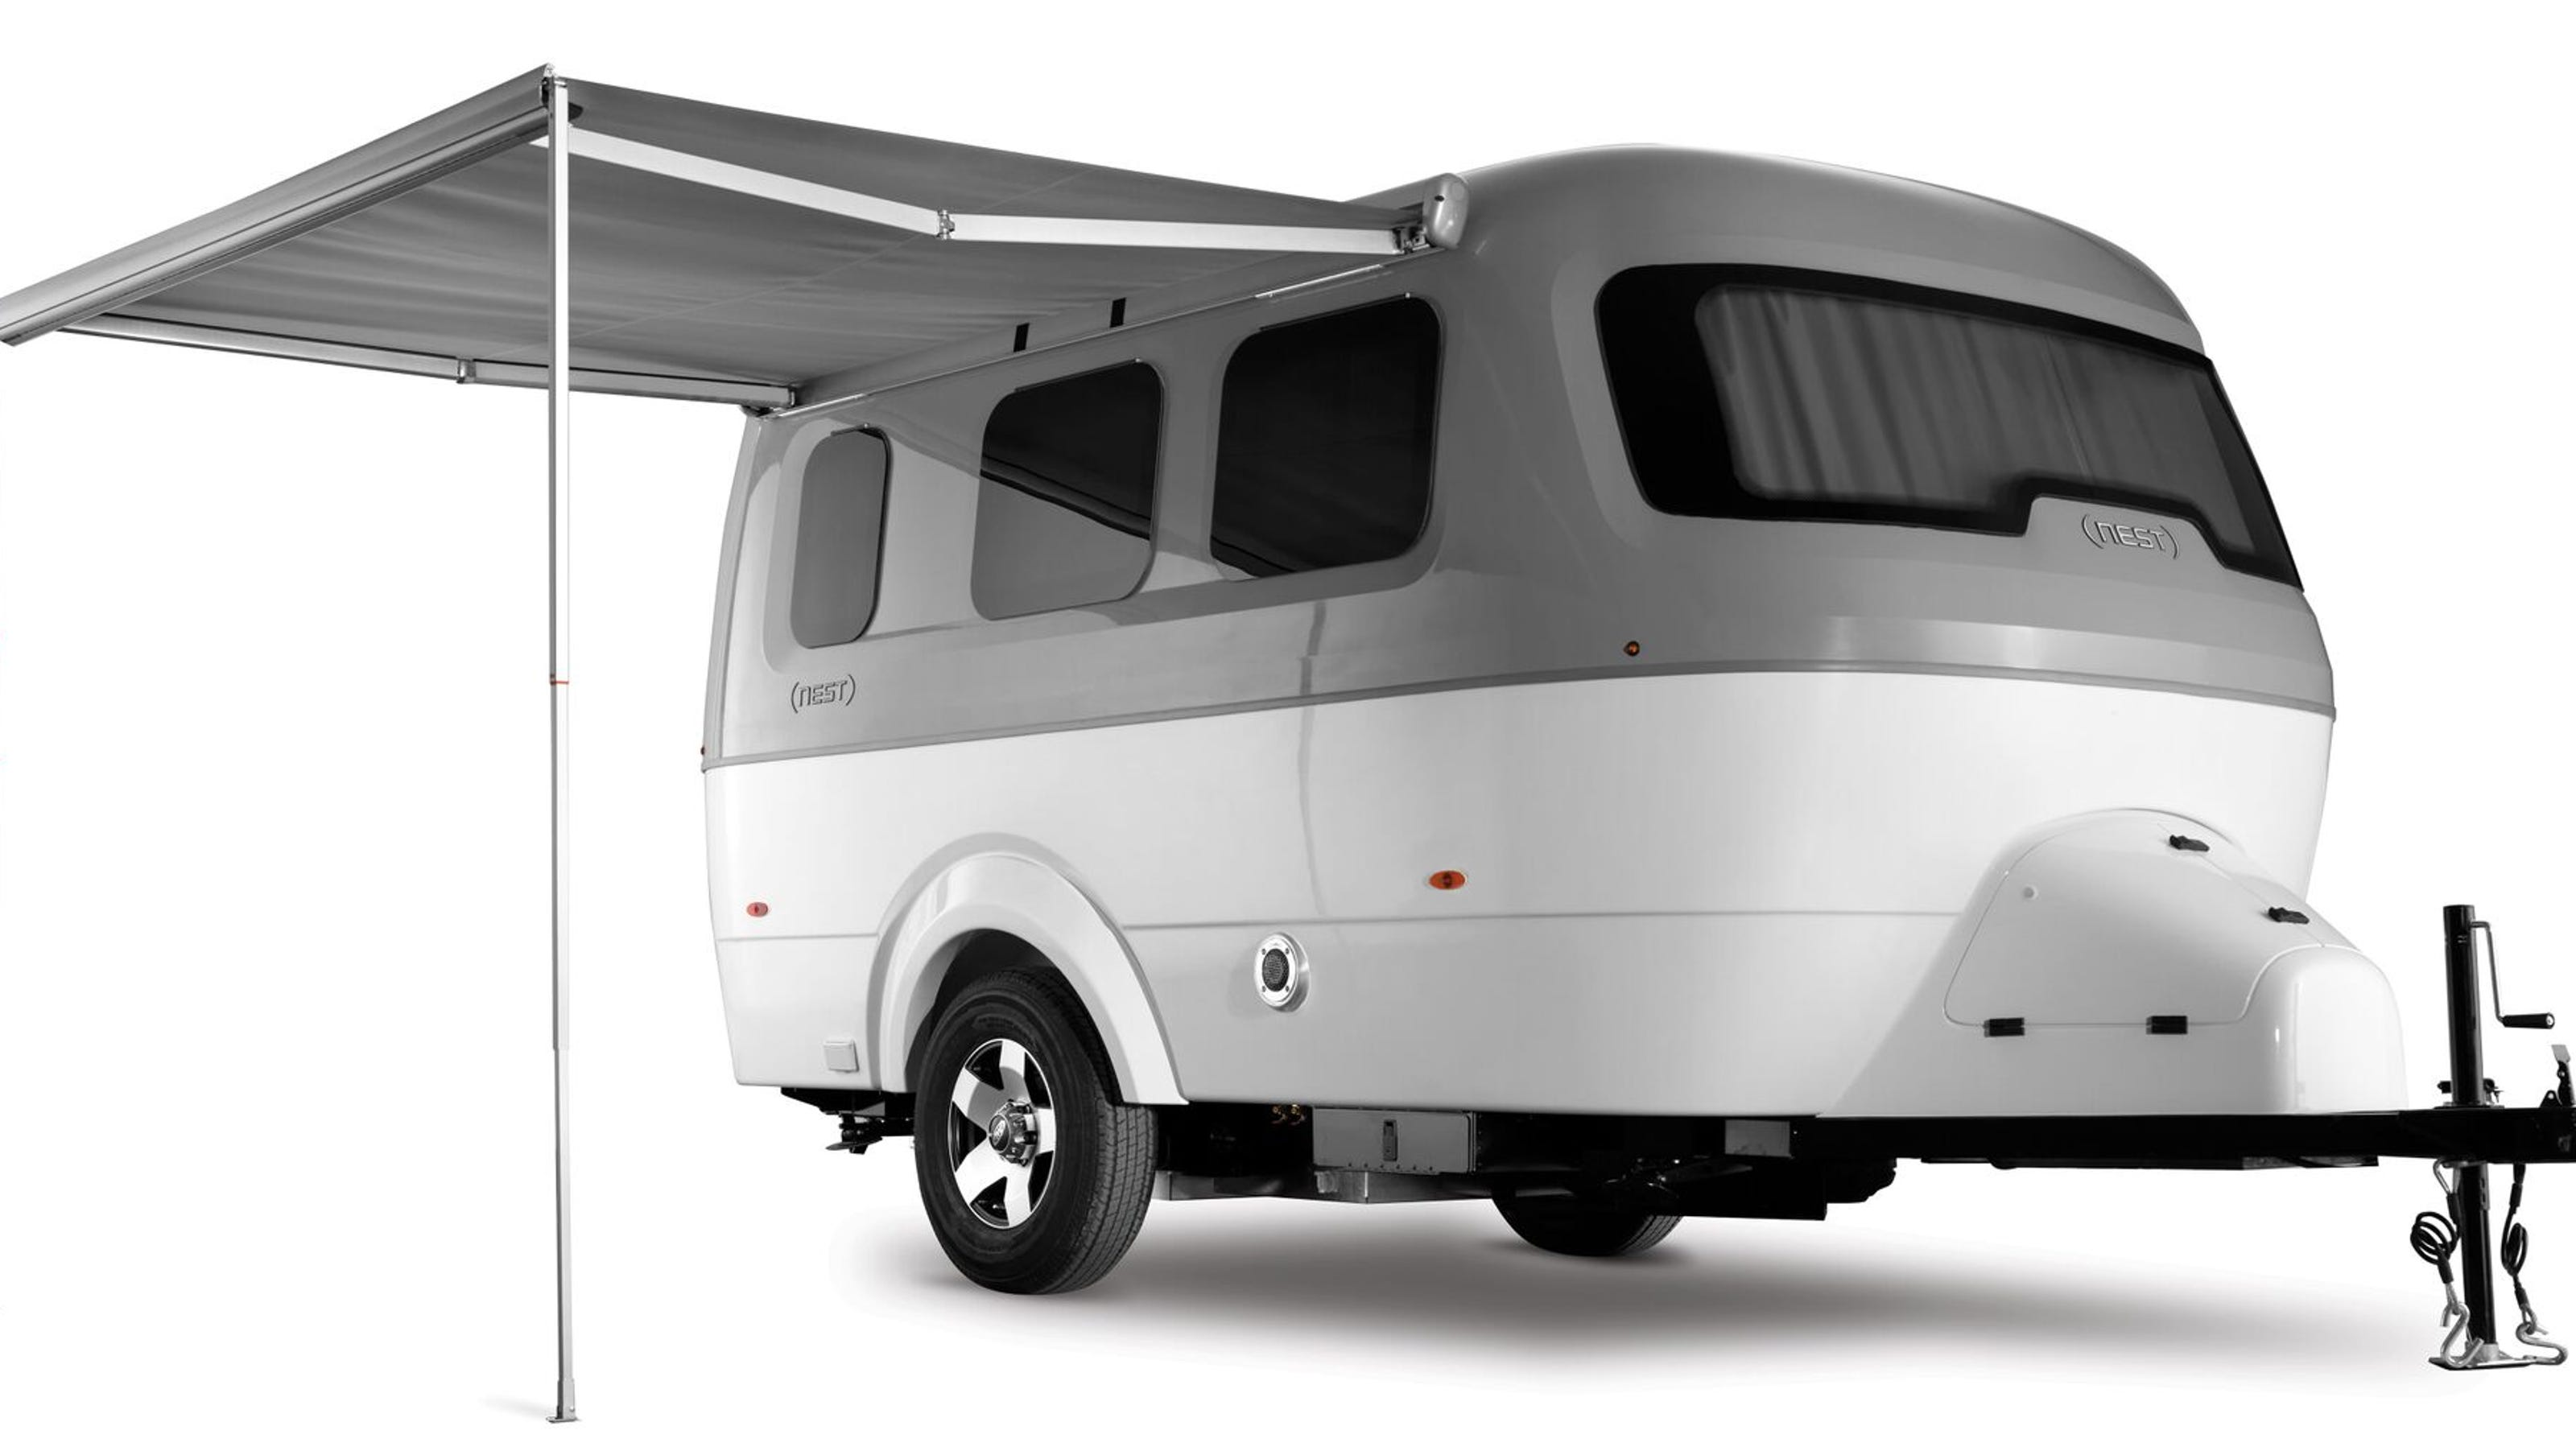 Airstream Travel Trailer >> Millennial interest drives wave of new RVs